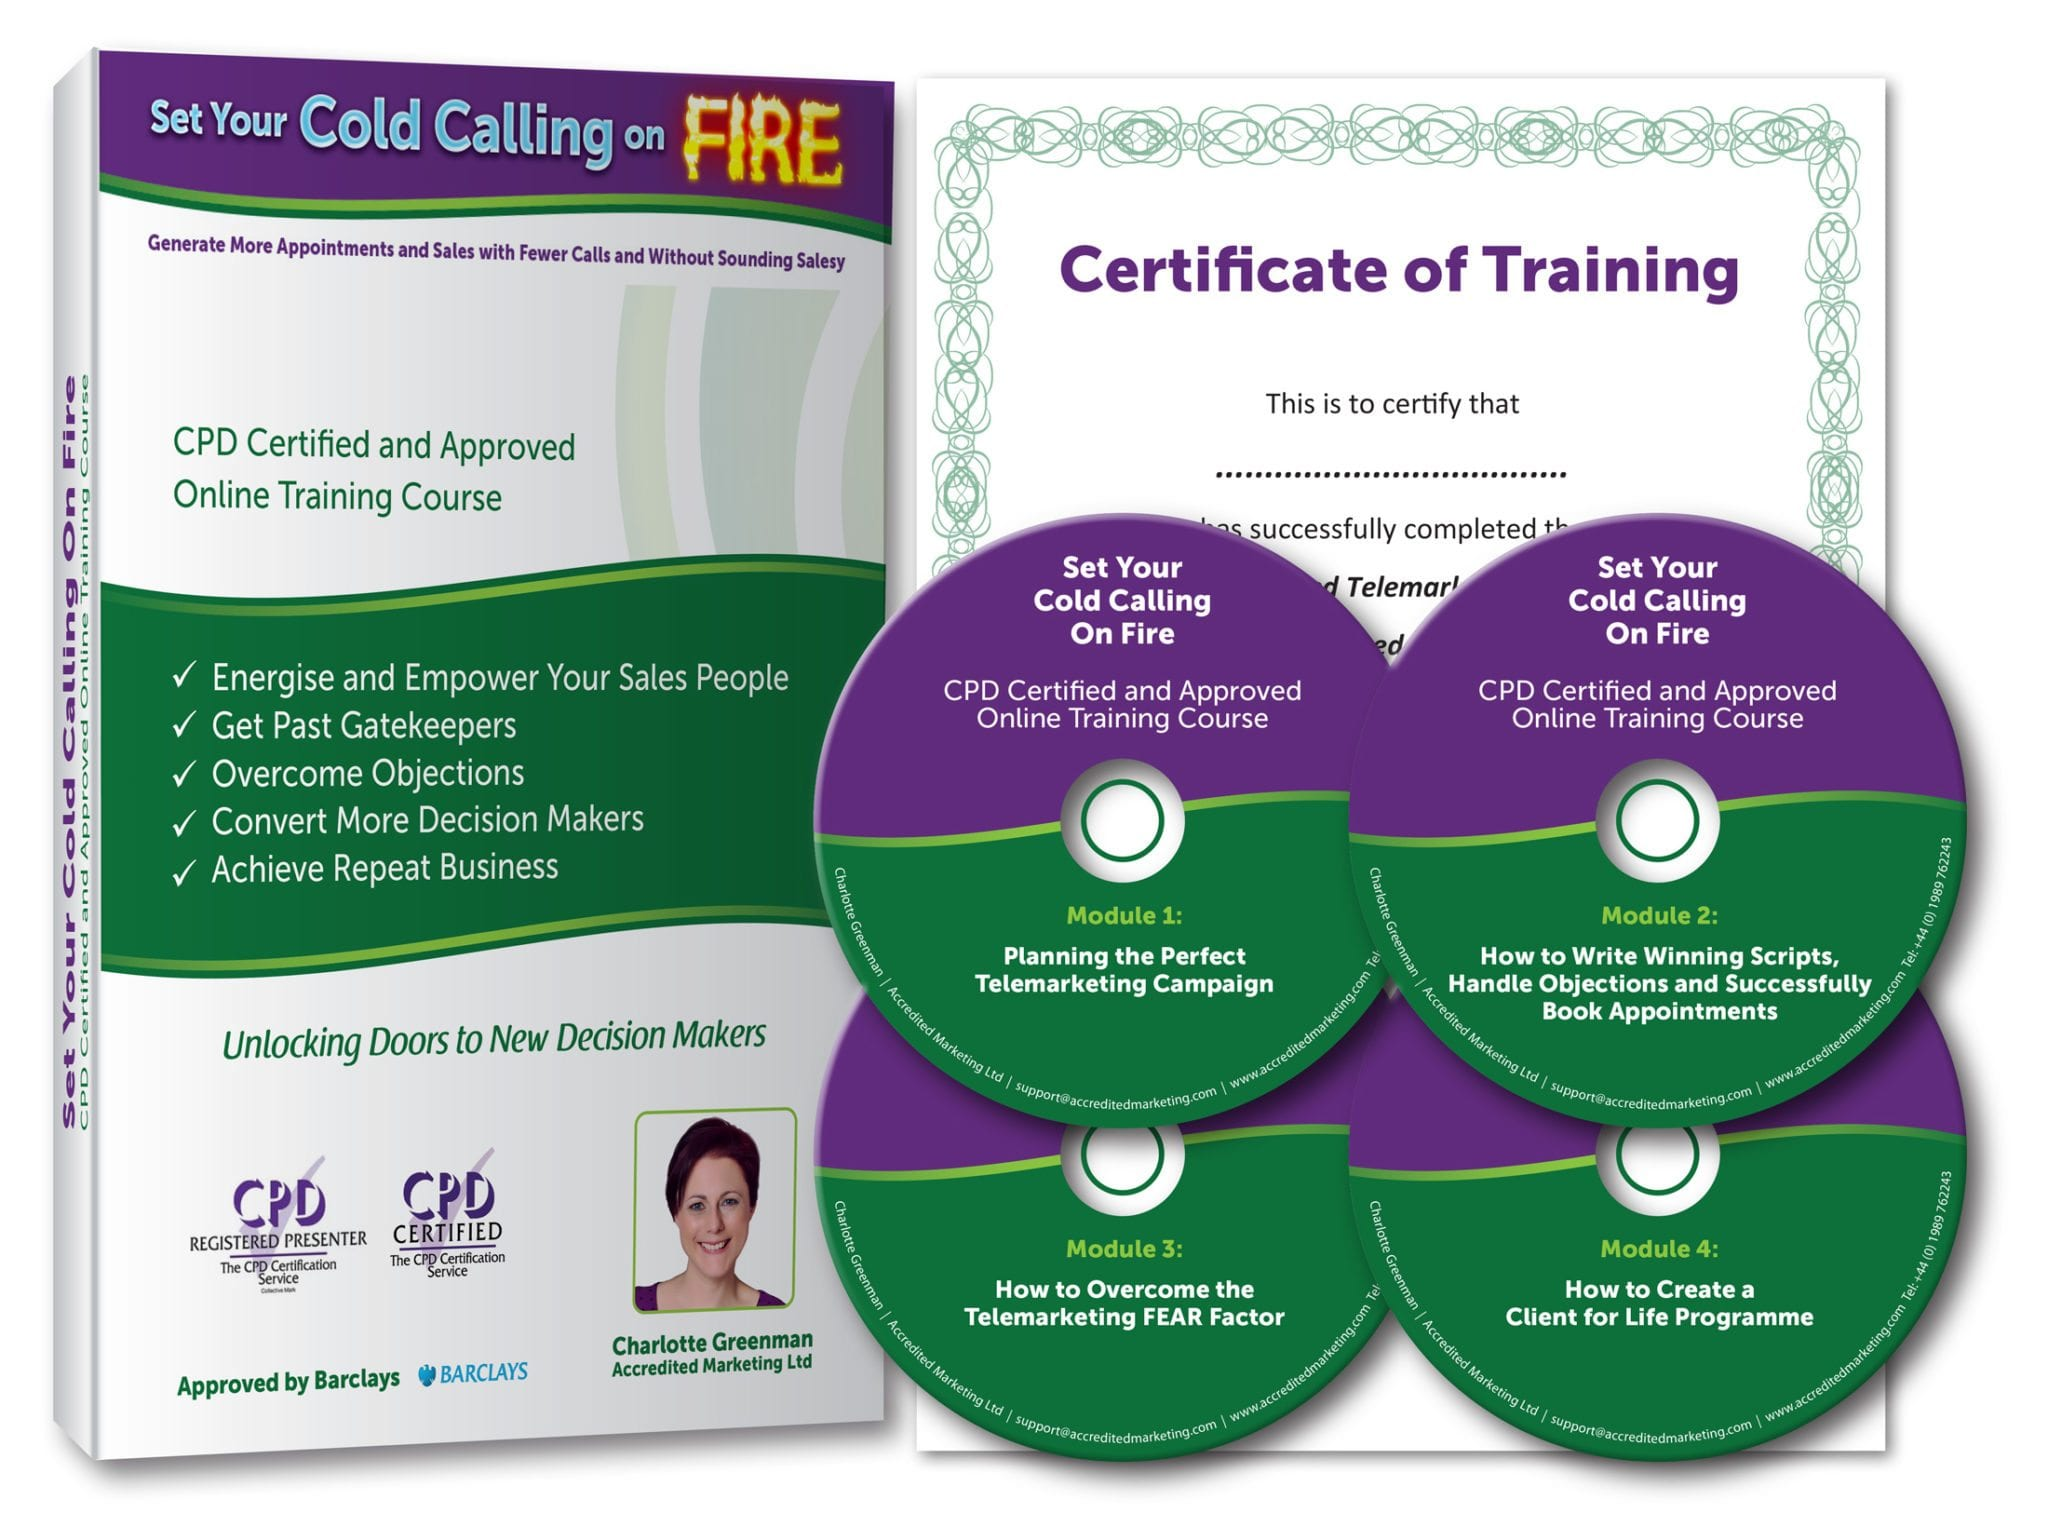 Set Your Cold Calling on Fire Online Telemarketing, Telesales and Appointment Making Training Course CPD certified